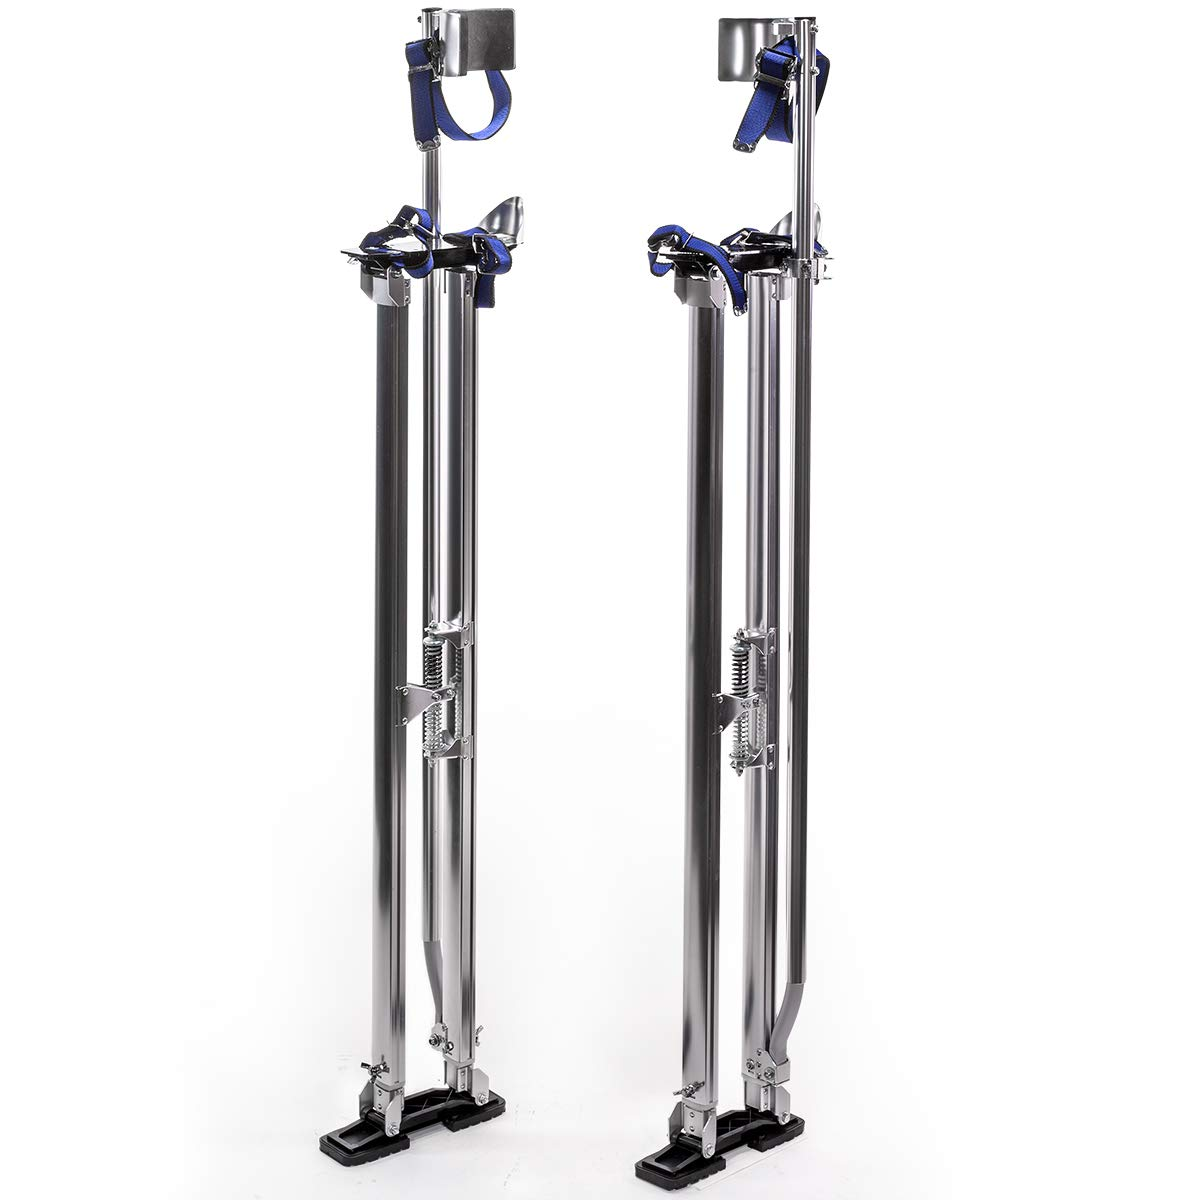 Stark Professional Drywall Stilts Drywall Lifts Height Walking Stilt for Painting Painter Taping Strap Adjustable 46'' - 64''